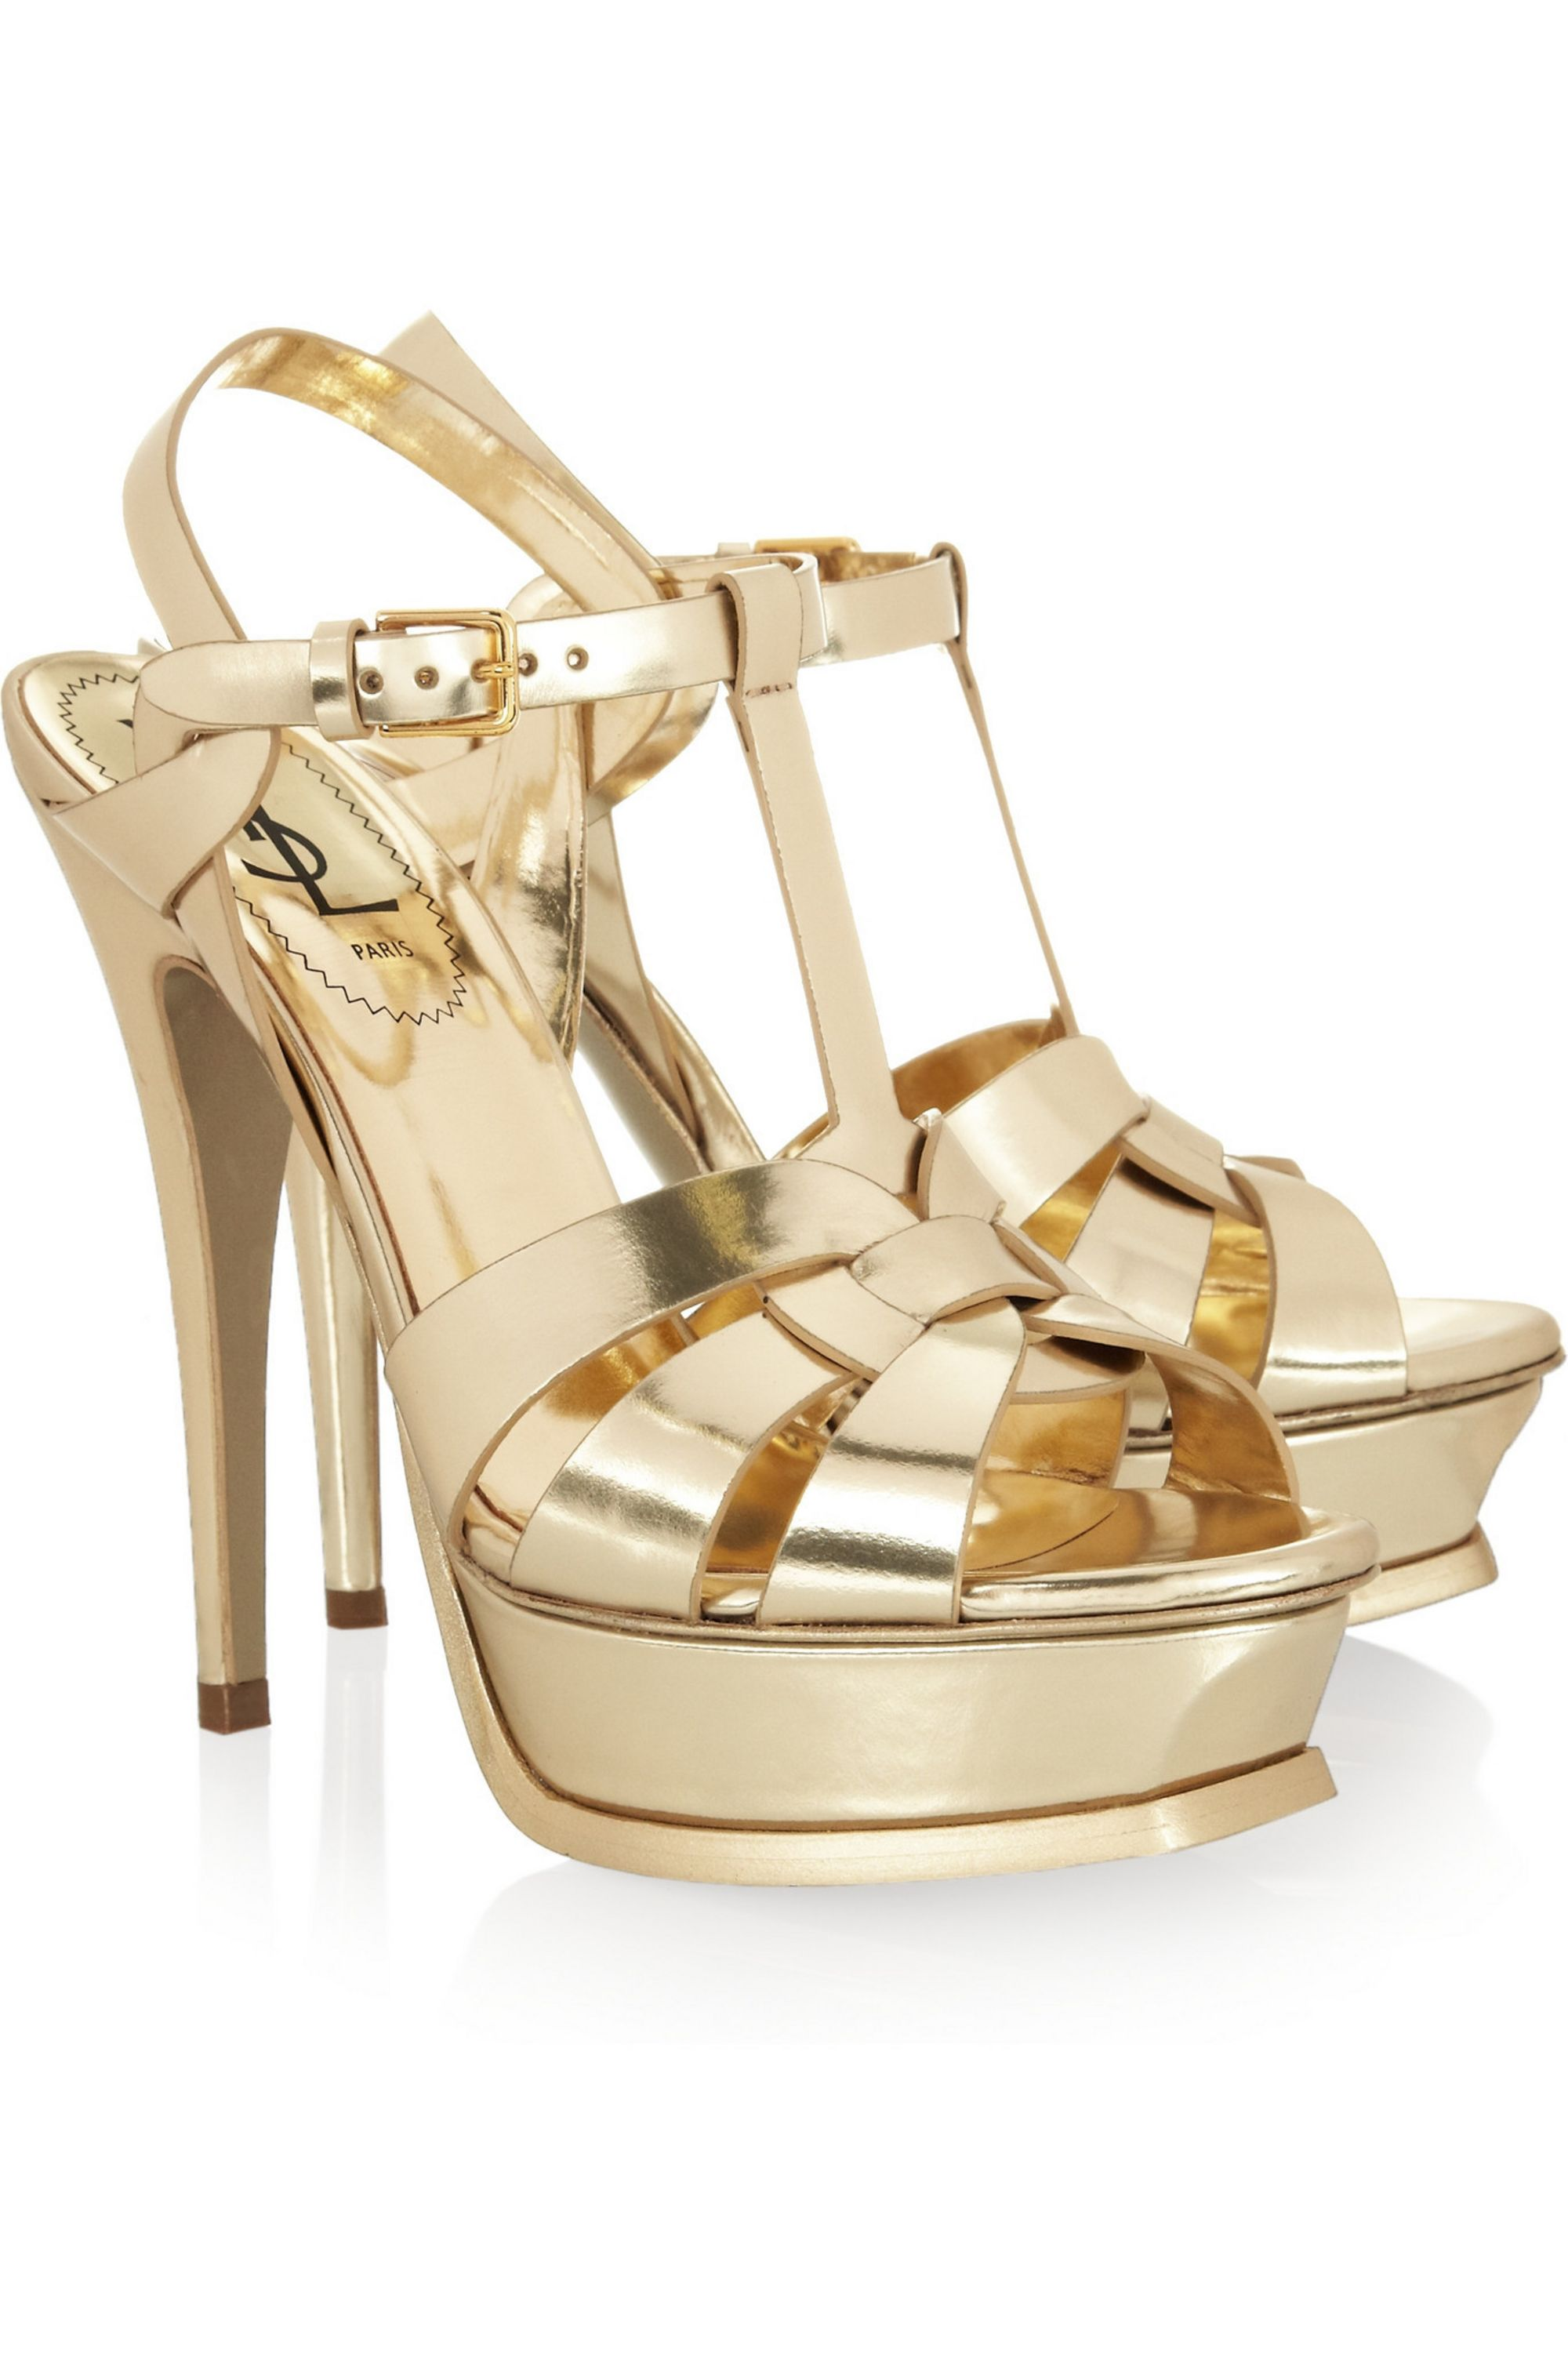 Gold Tribute mirrored-leather sandals